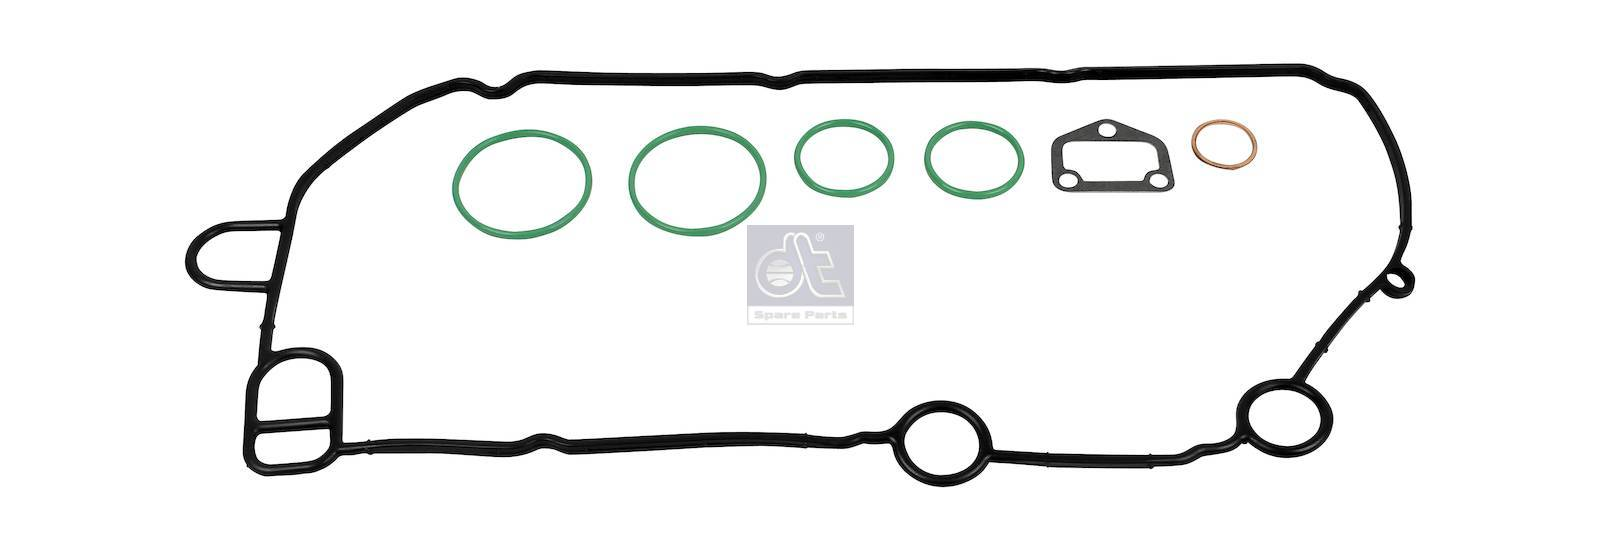 DT 1.31149 Gasket kit, oil cooler 1502798S suitable for Scania